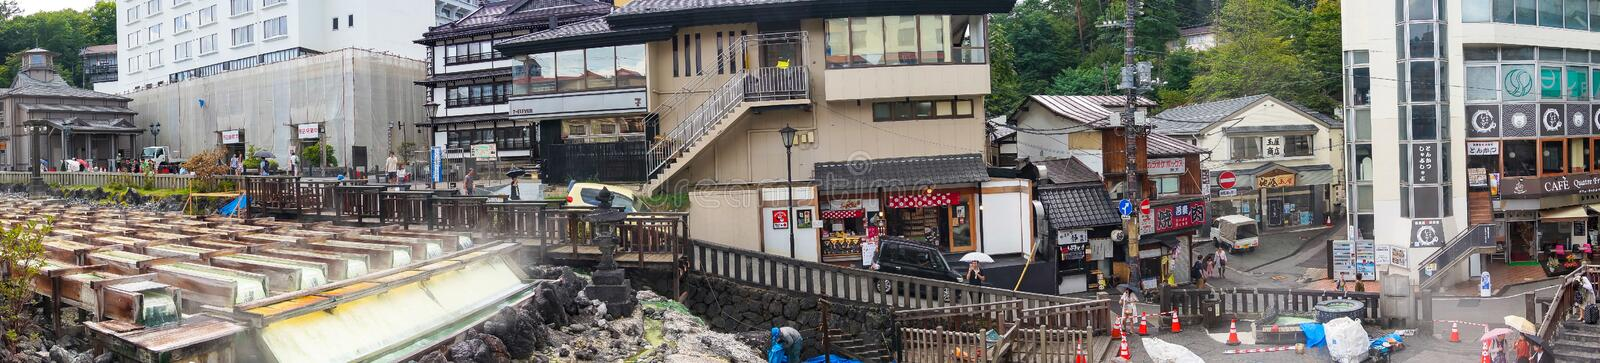 Panorama view of famous Yubatake hot spring, onsen and Kusatsu s royalty free stock images